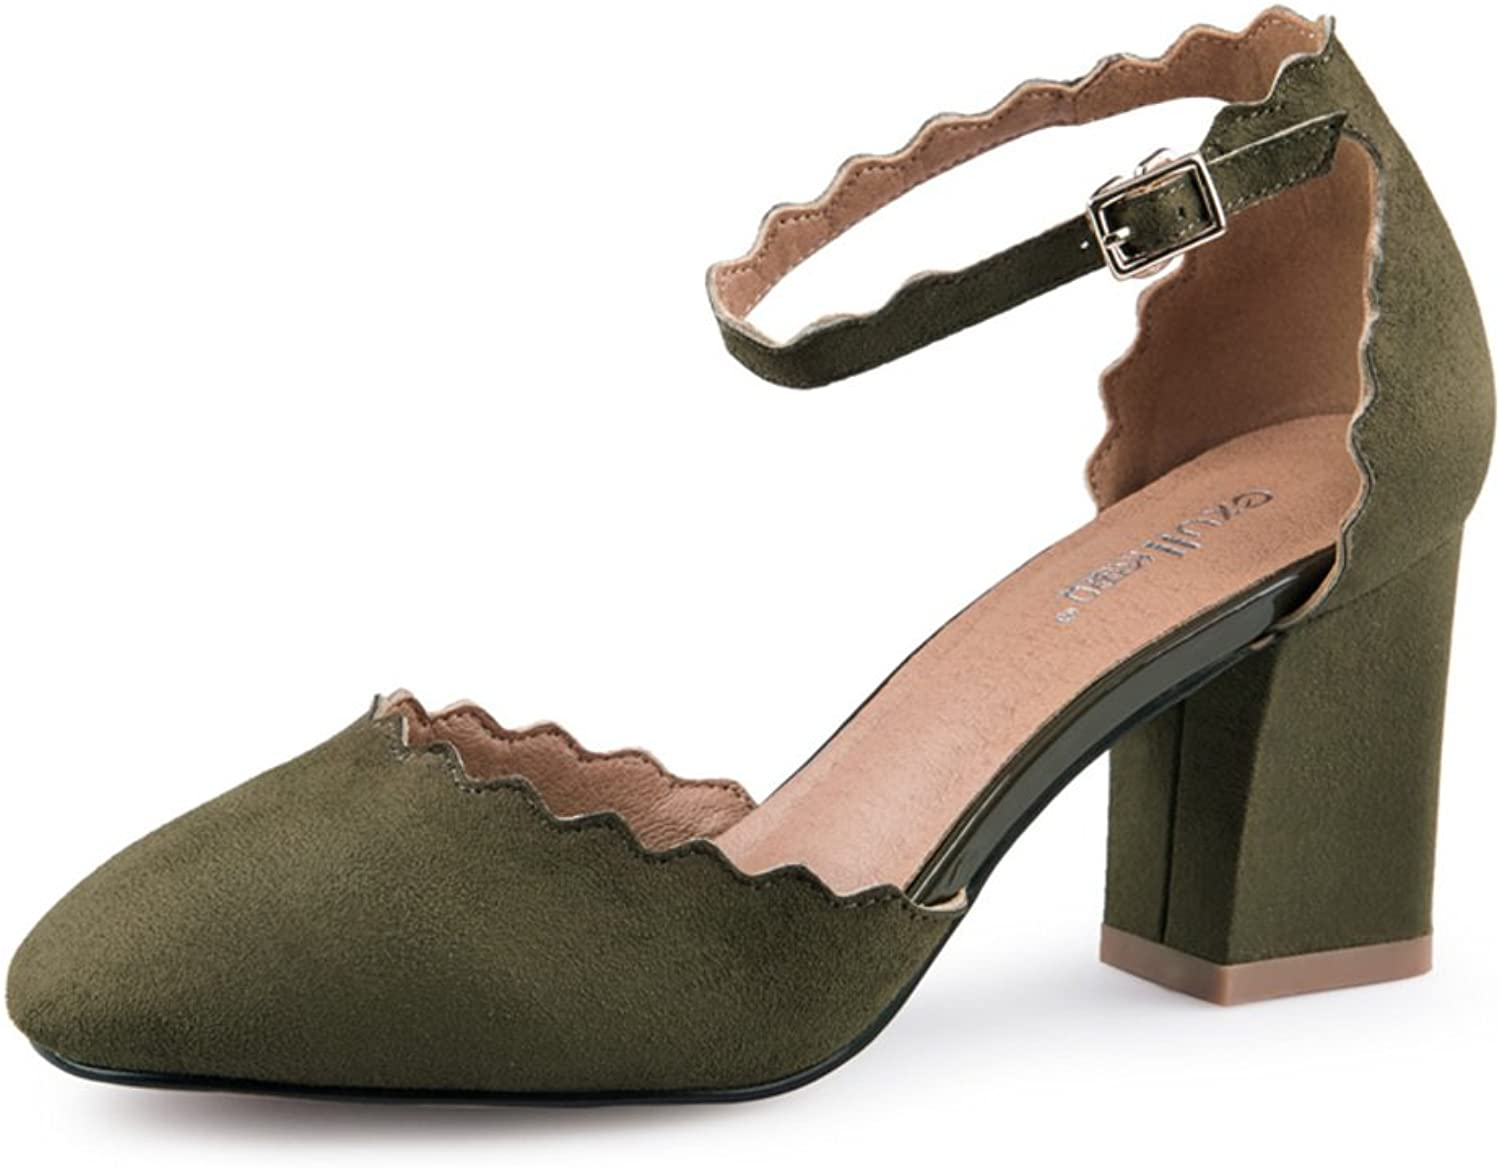 MET RXL Spring and Autumn Suede shoes Light-Mouth Buckle Belt shoes Lady shoes.